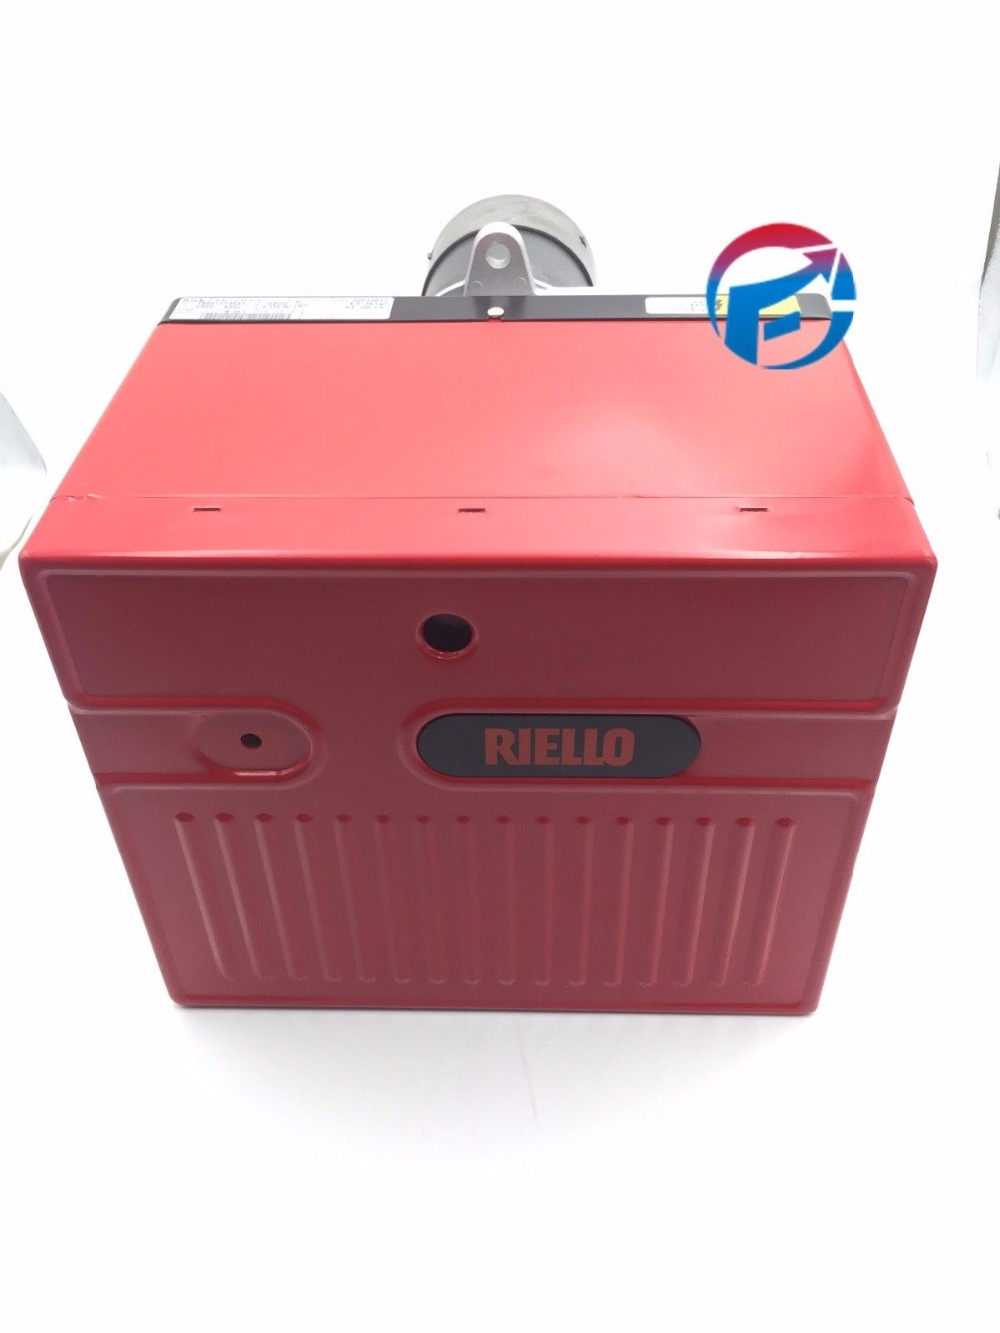 Riello R40 G10  Industrial Diesel Burner Oil Burner,Spray Booth Heating Burners,Kerosene Burner